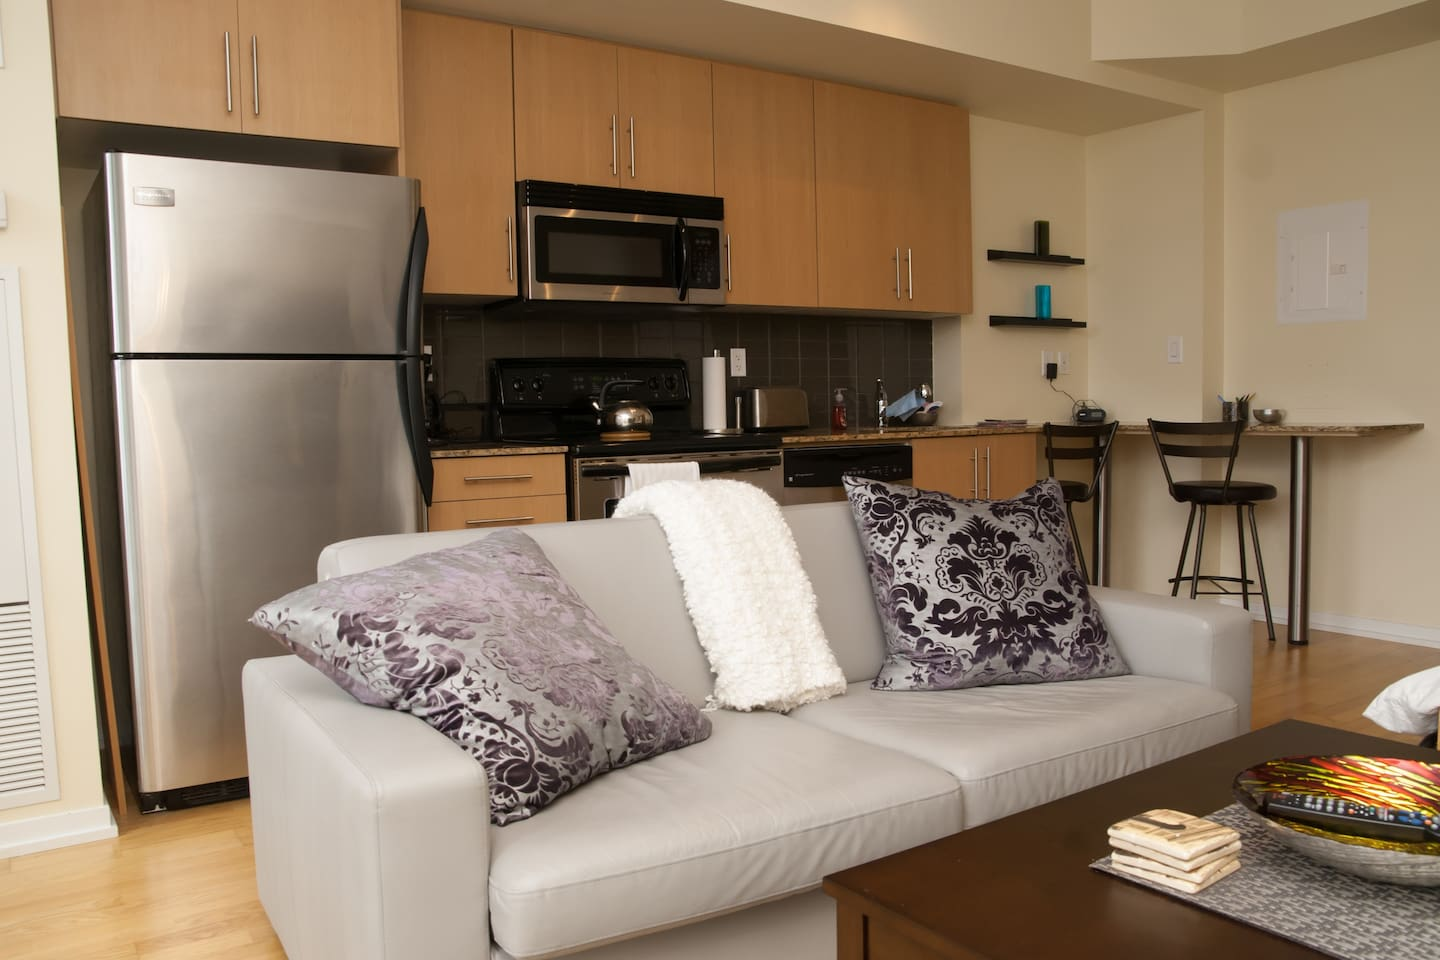 Modern, fully furnished studio suite in the heart of downtown